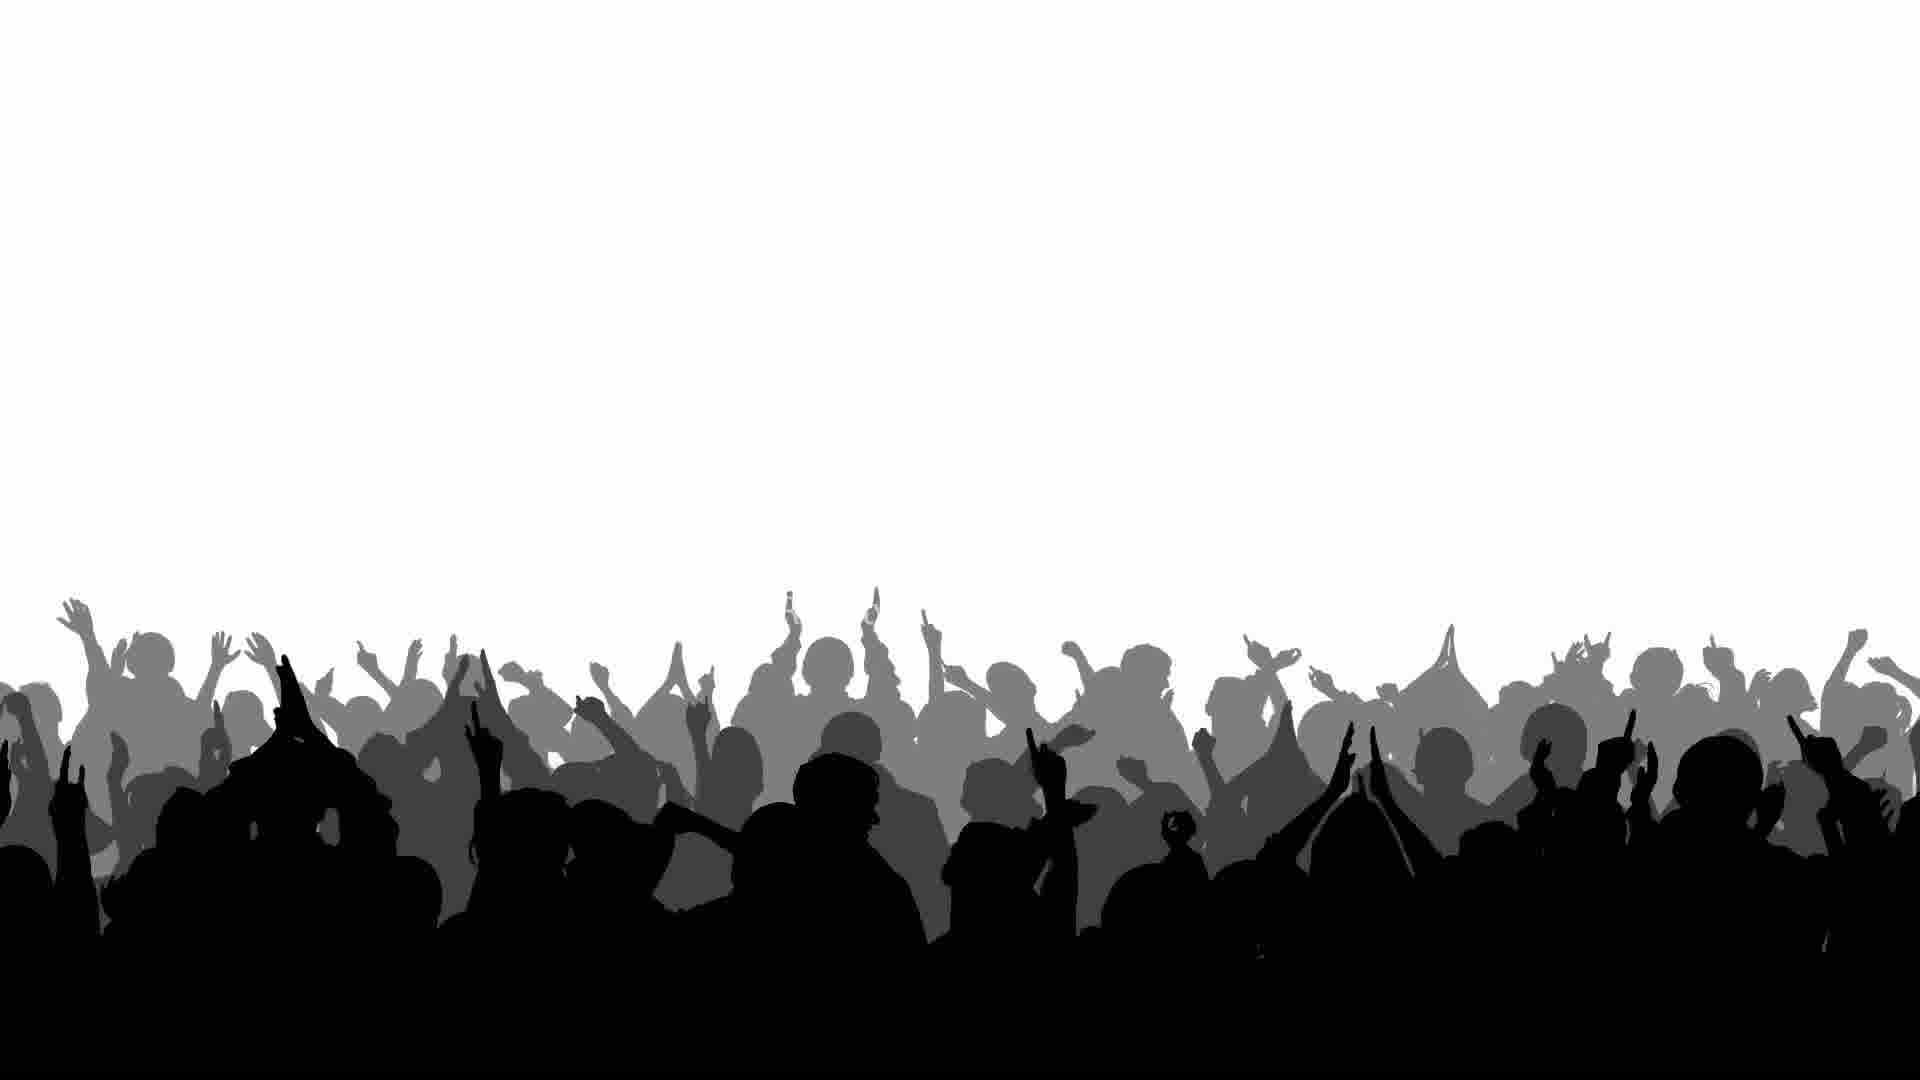 Concert Crowd Silhouette Png Images & Pictures - Becuo Rock Band Silhouette